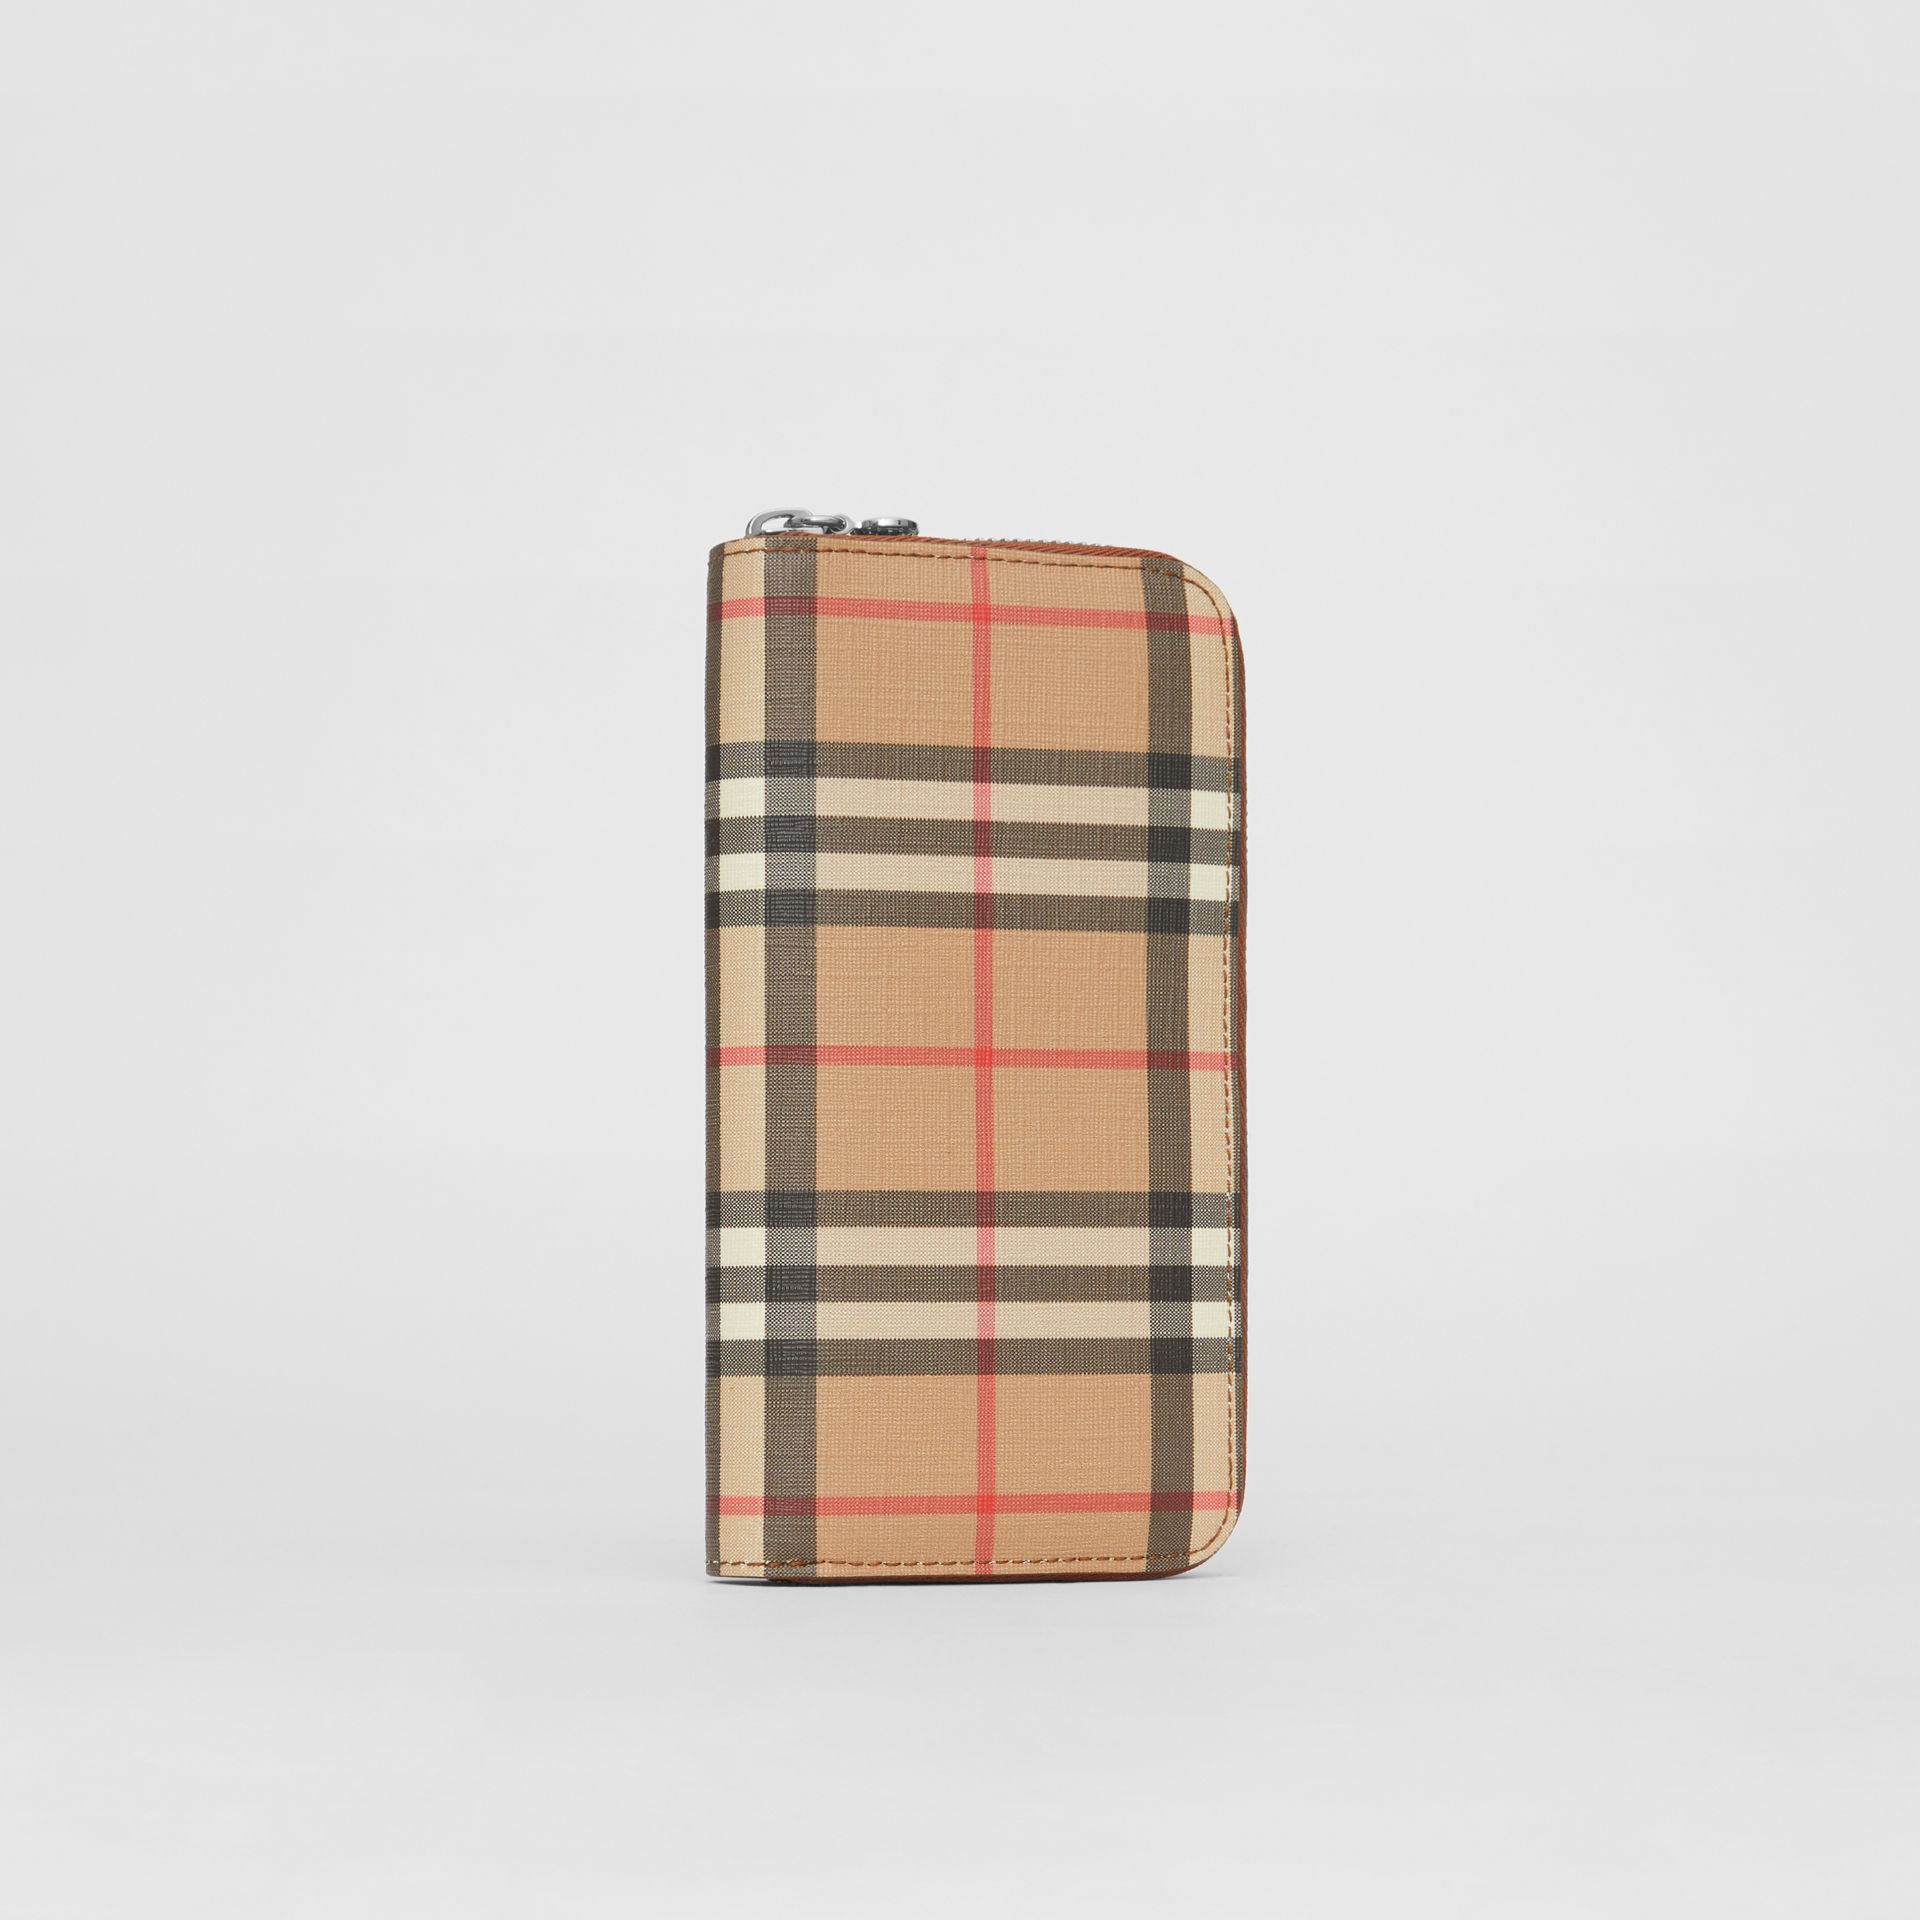 Vintage Check and Leather Ziparound Wallet in Malt Brown - Women | Burberry United Kingdom - gallery image 3